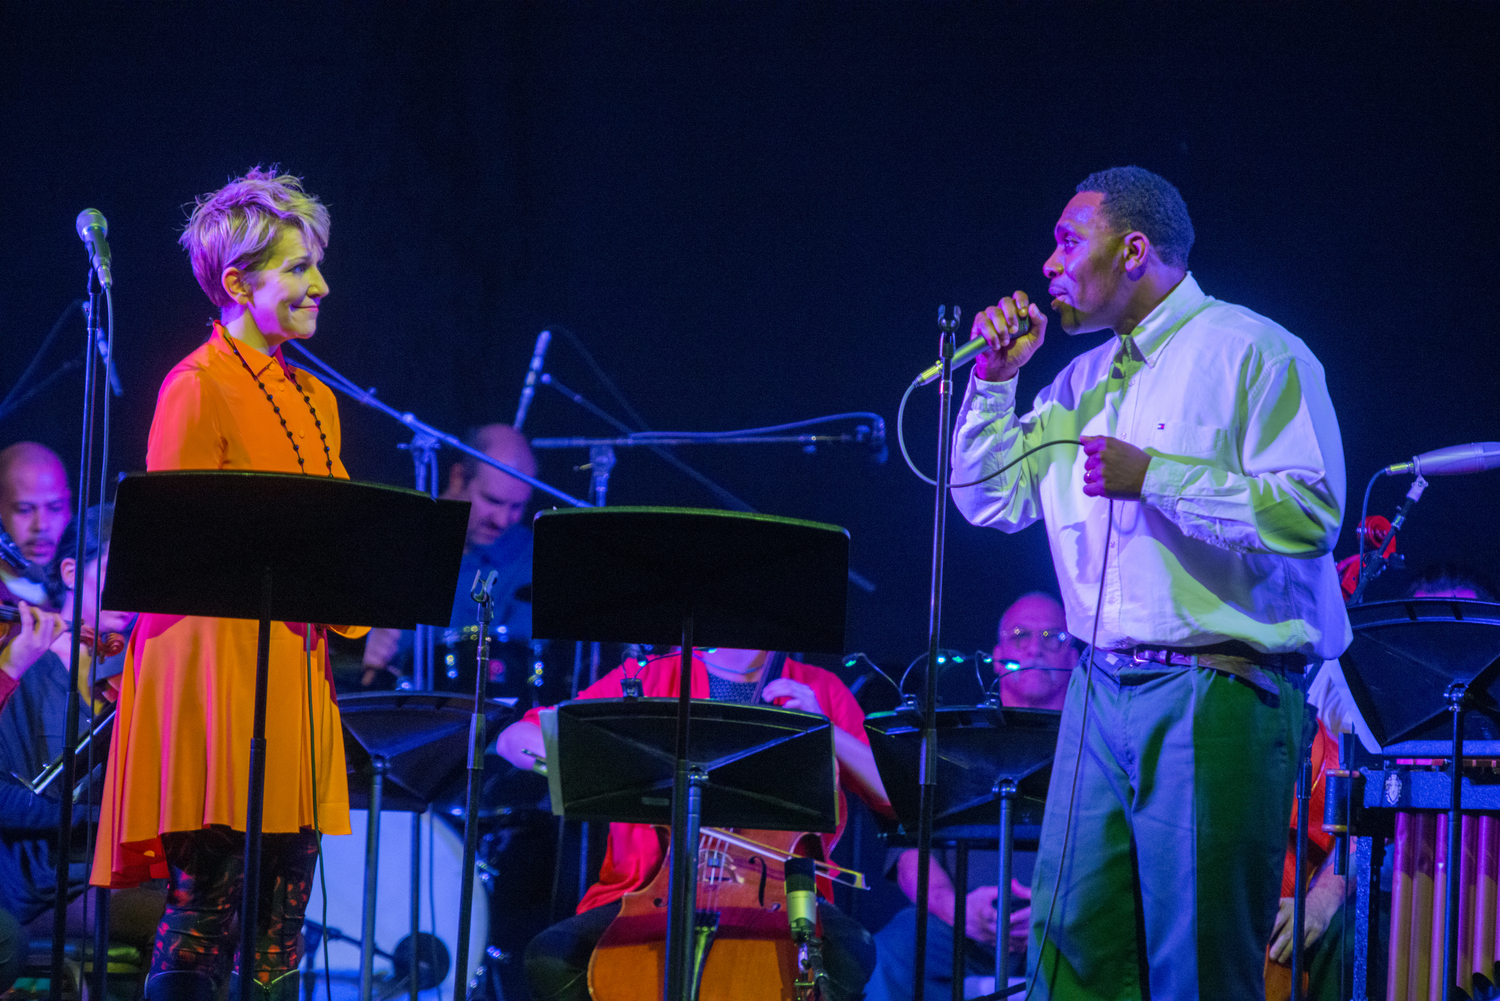 Joe performs a duet with mezzo-soprano Joyce DiDonato. (Photo by Stephanie Berger)